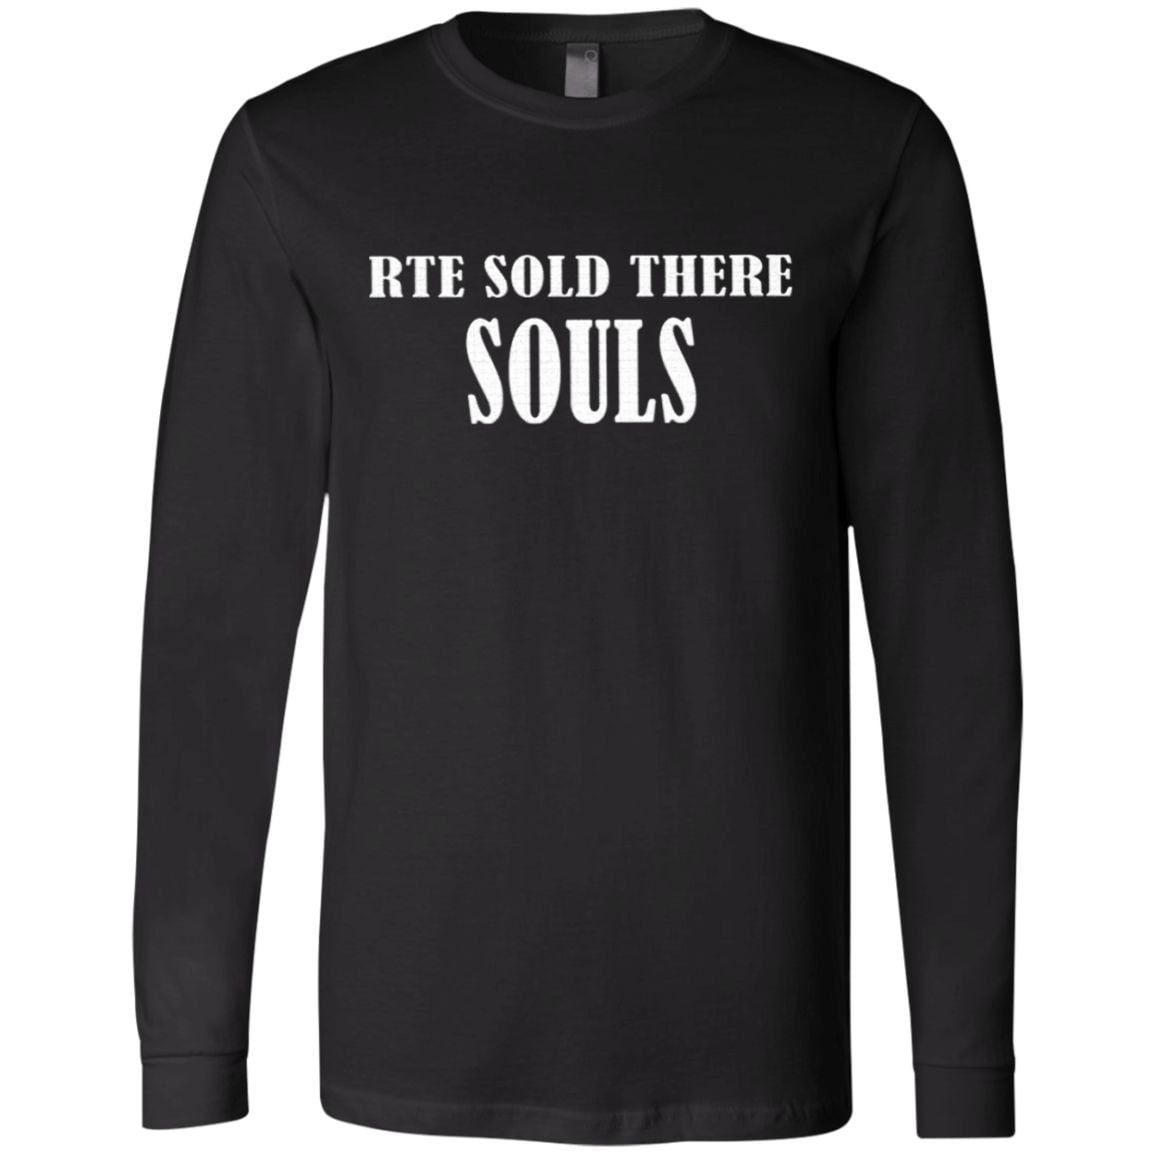 Rte Sold There Souls T Shirt